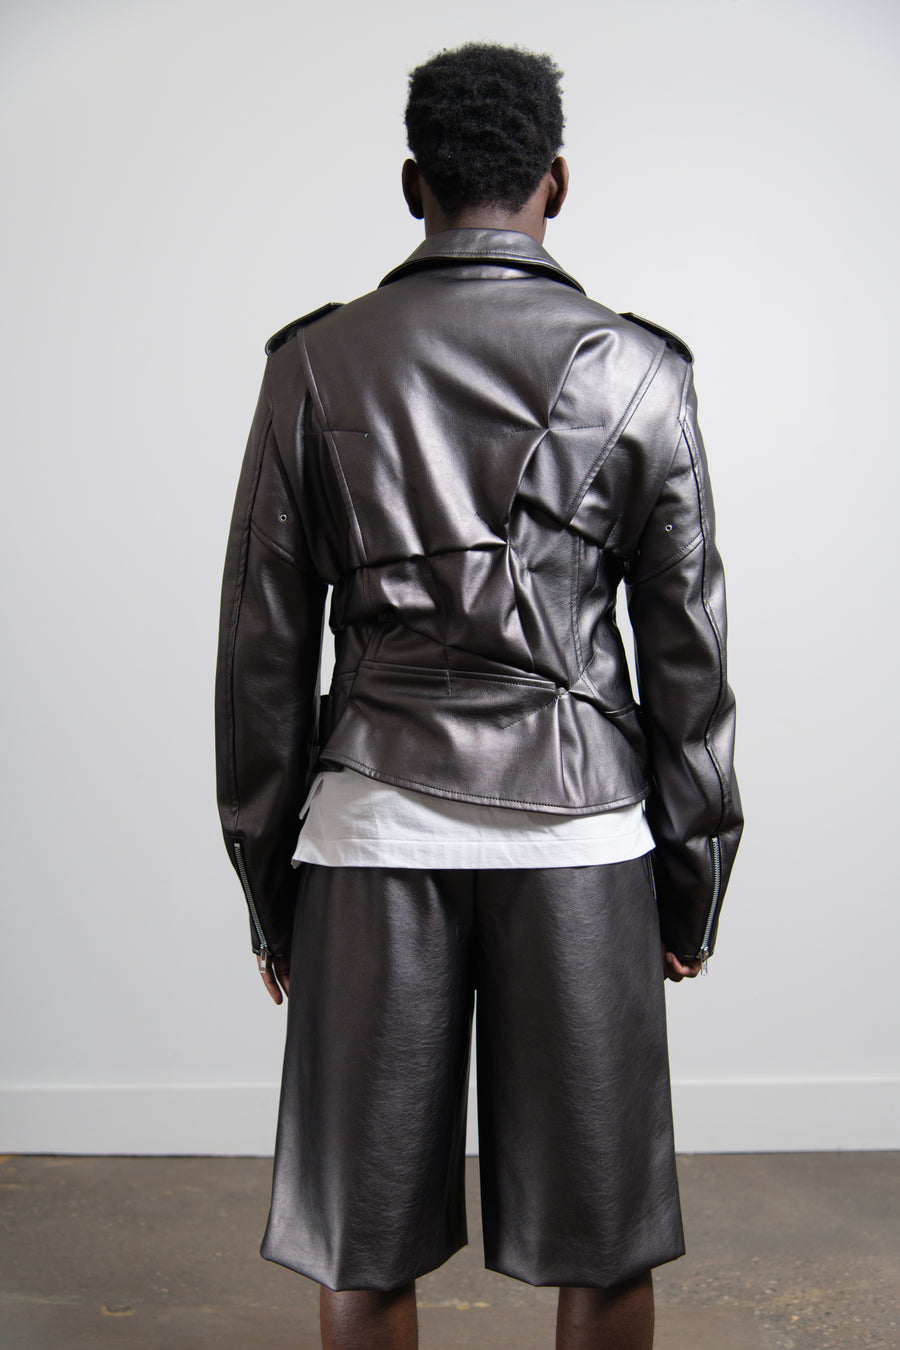 Metallic Faux Leather Jacket Gunmetal Silver J016